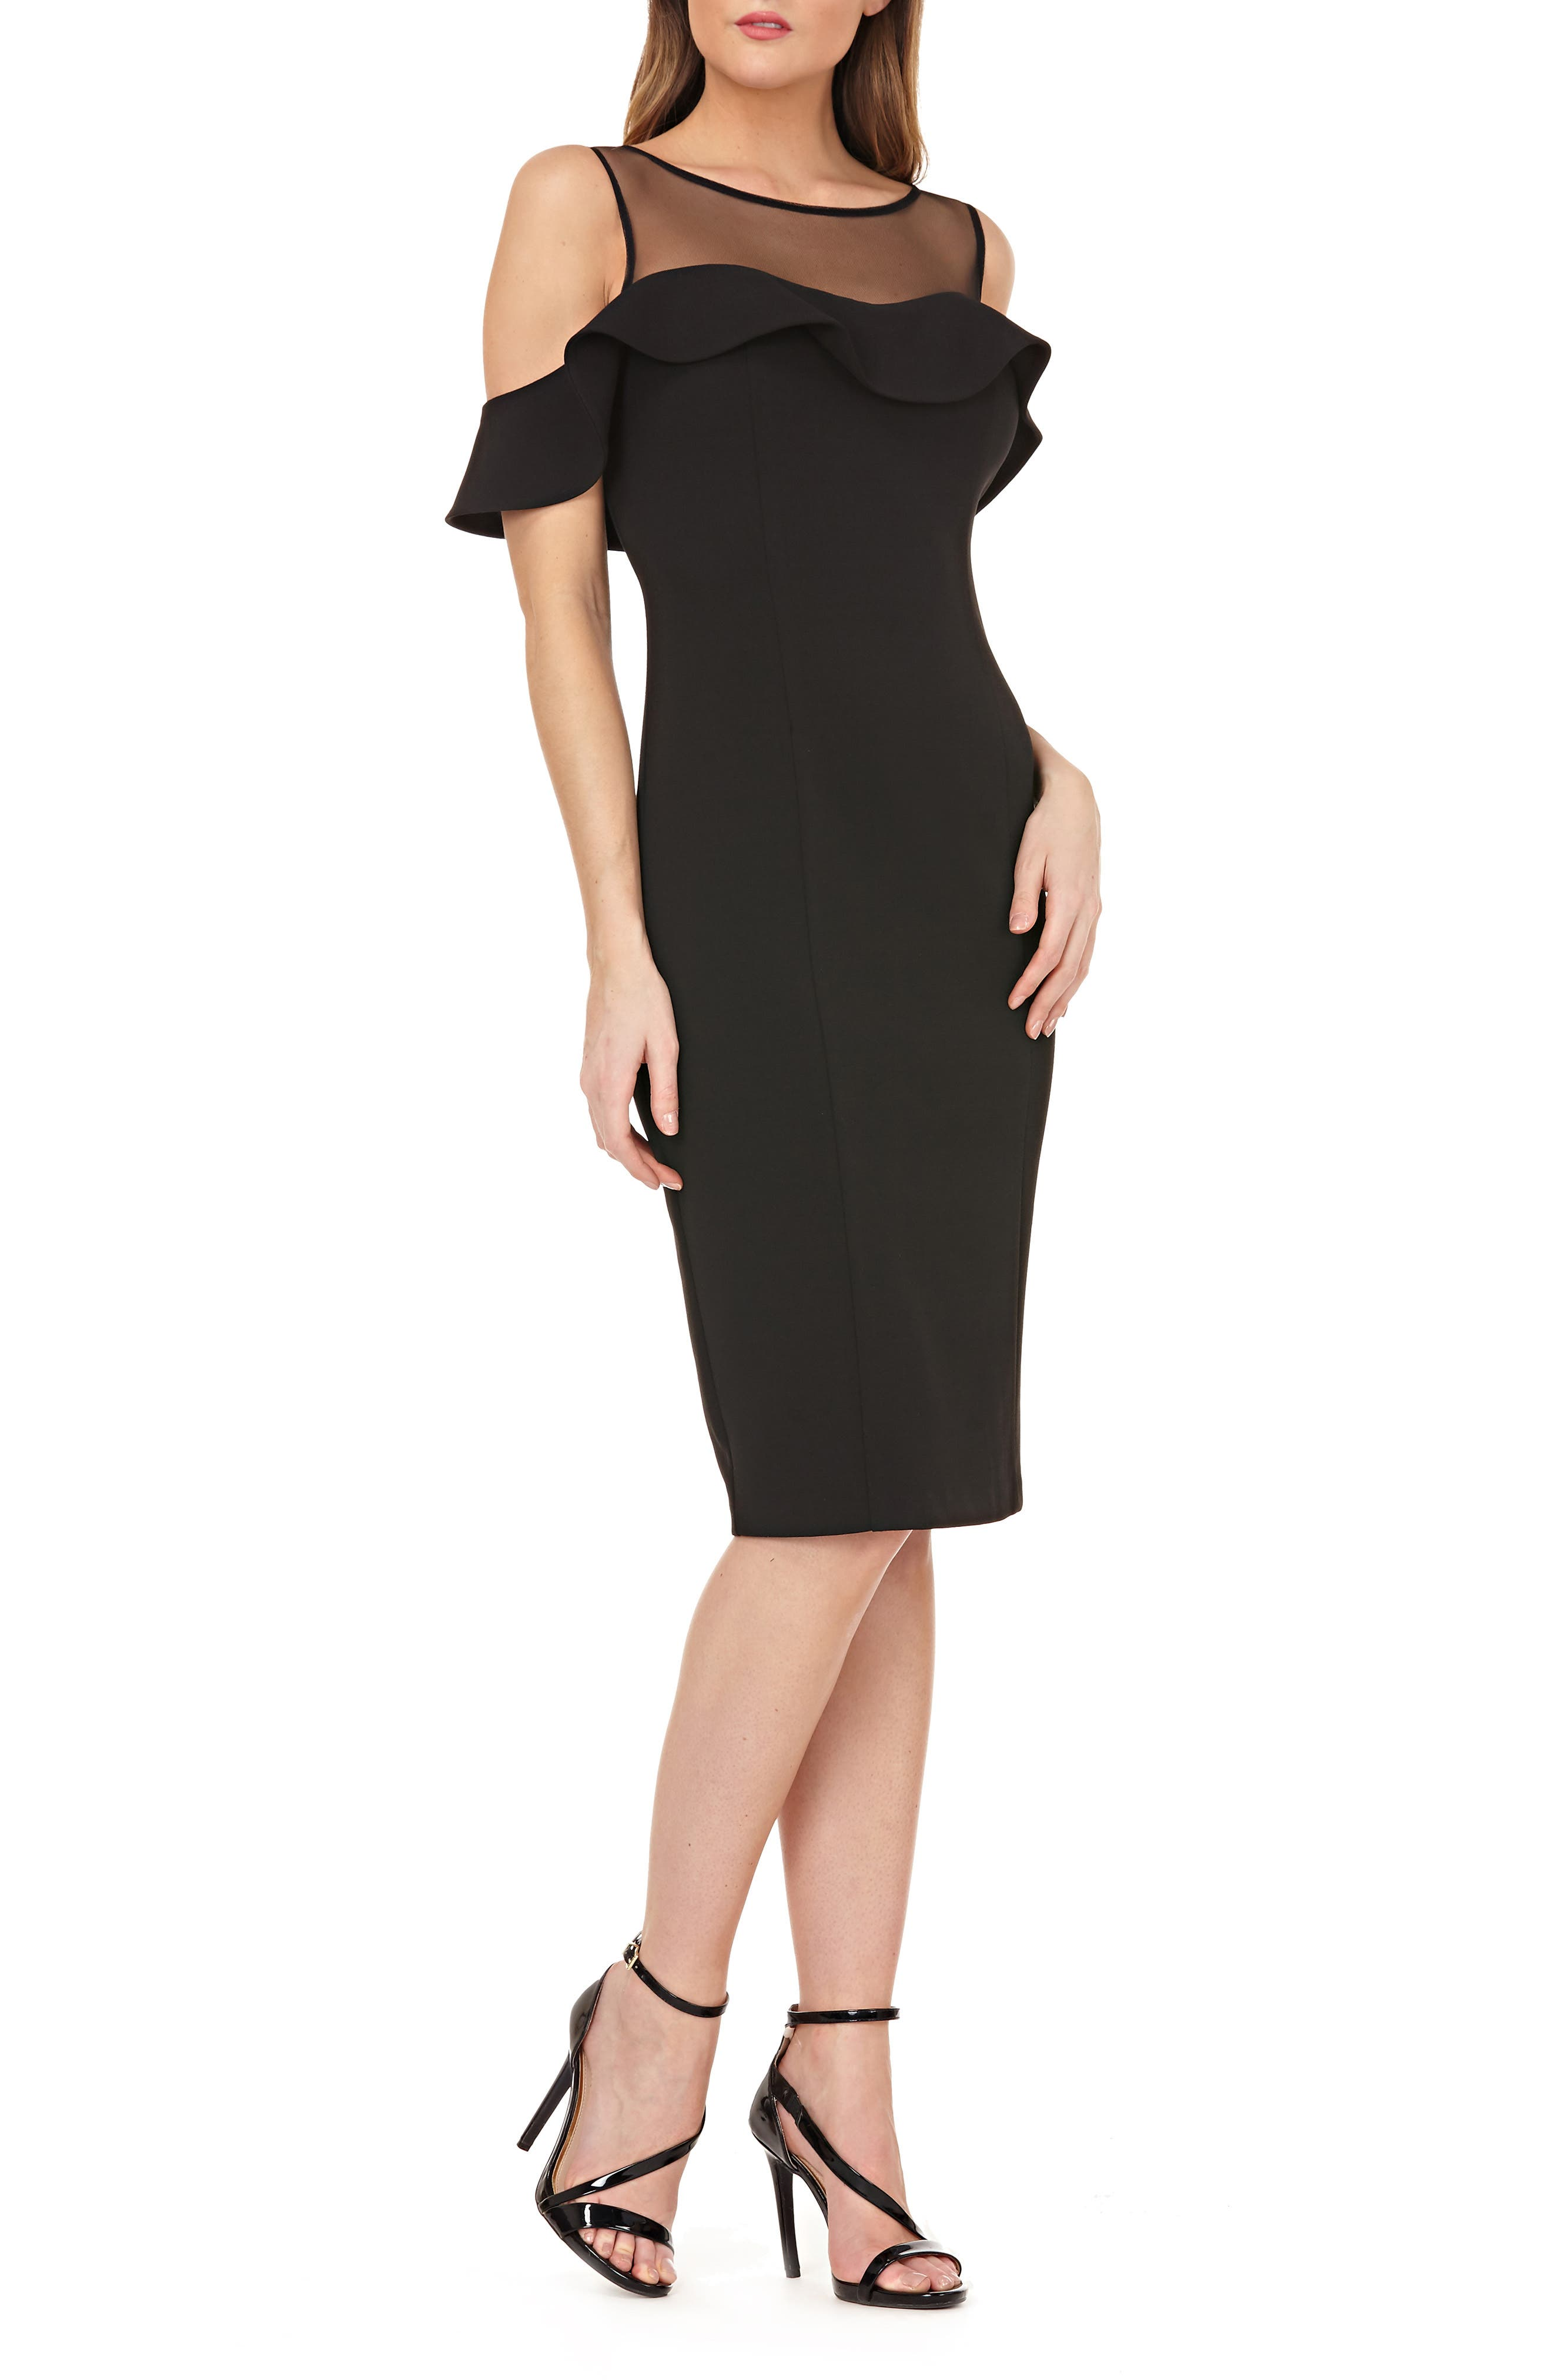 Js Collections Illusion Neck Ruffle Sleeve Cocktail Dress, Black